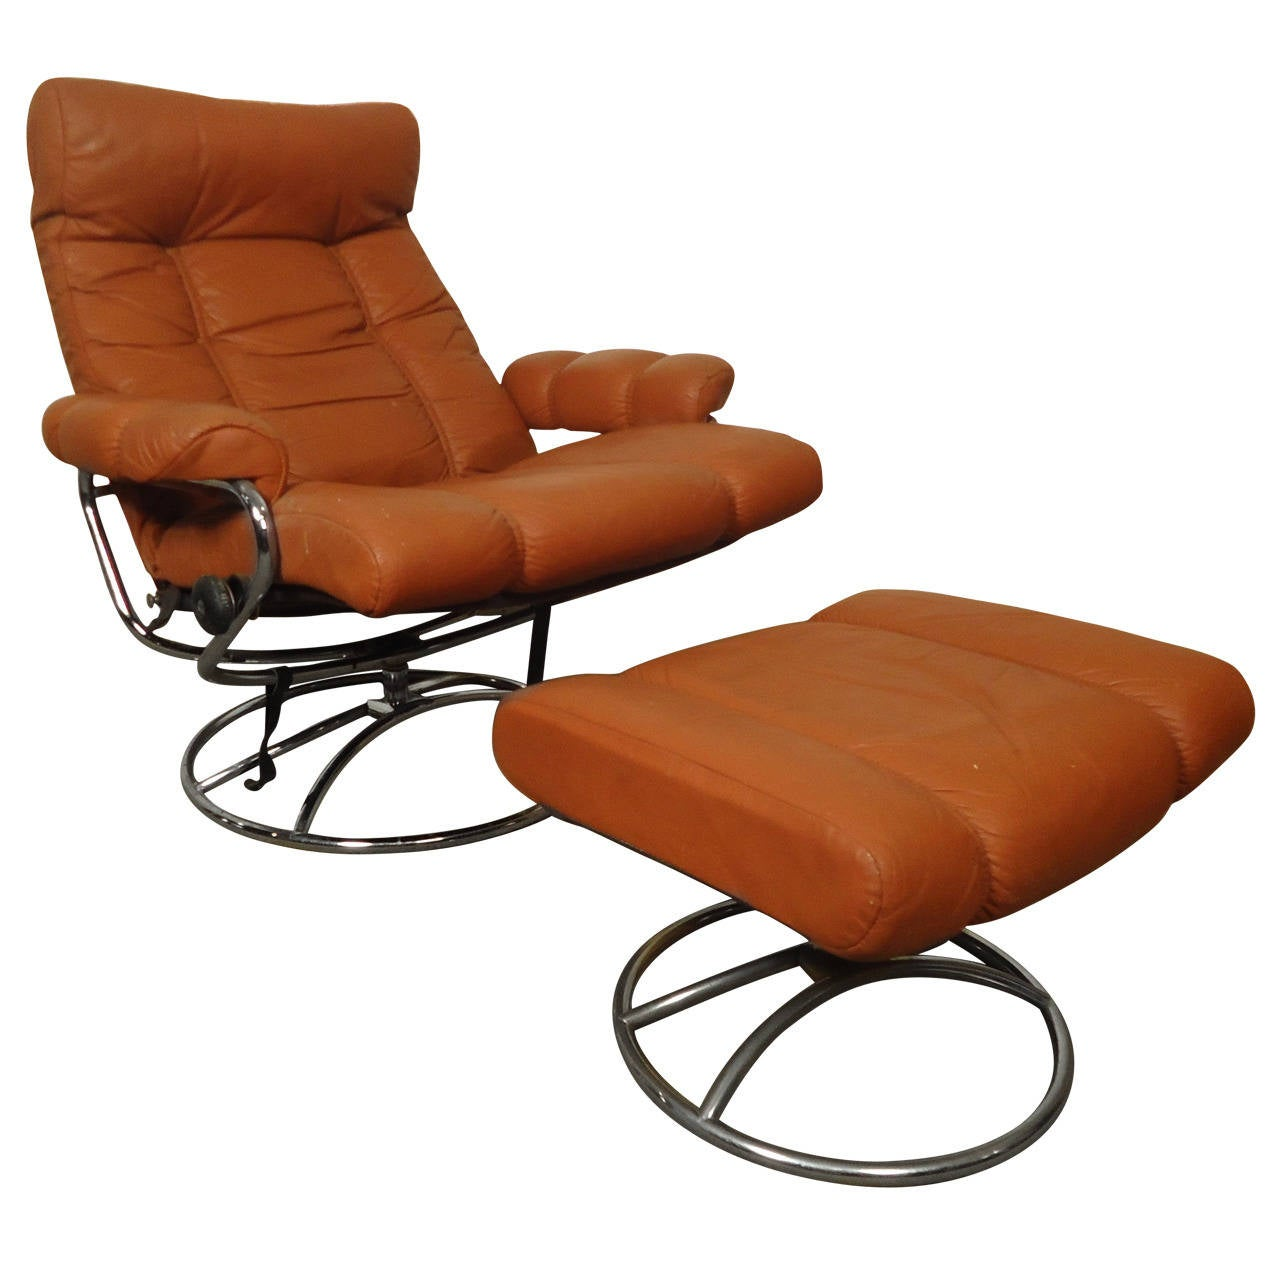 Ekornes Chairs Mid Century Reclining Chair And Ottoman By Ekornes